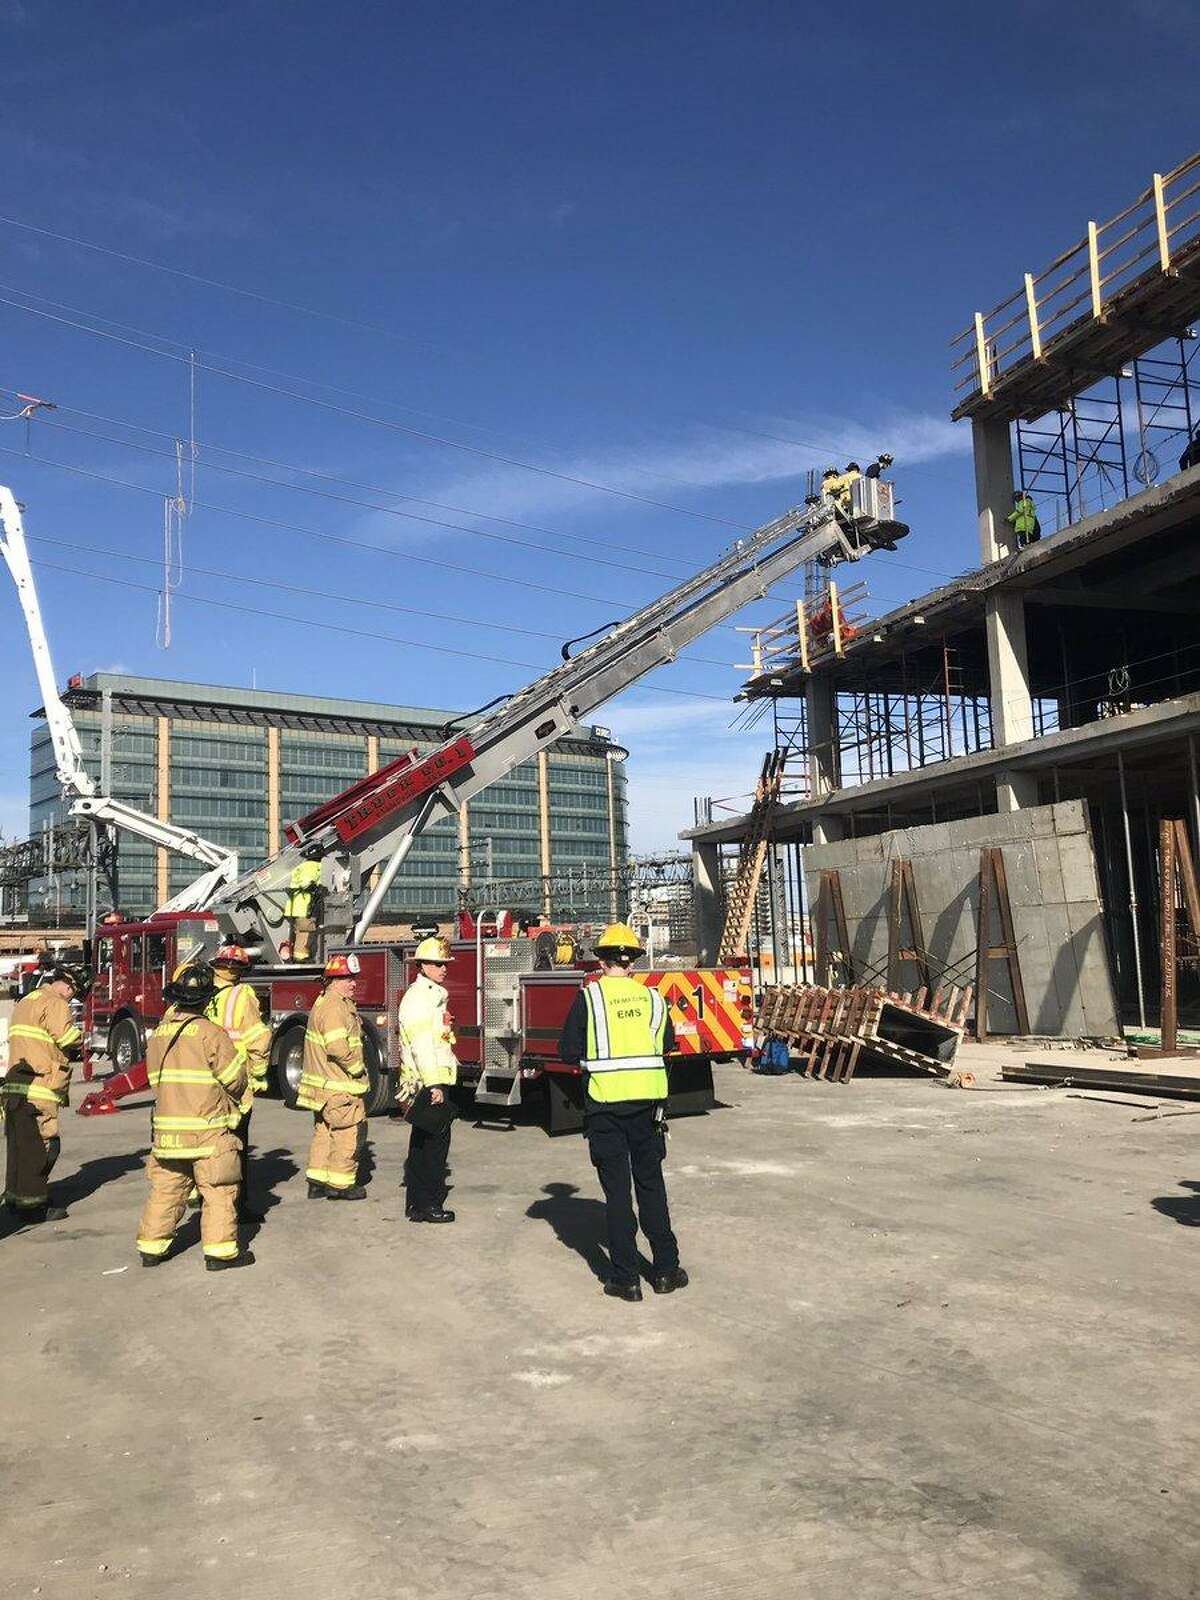 A worker was injured Thursday at a Stamford construction site.